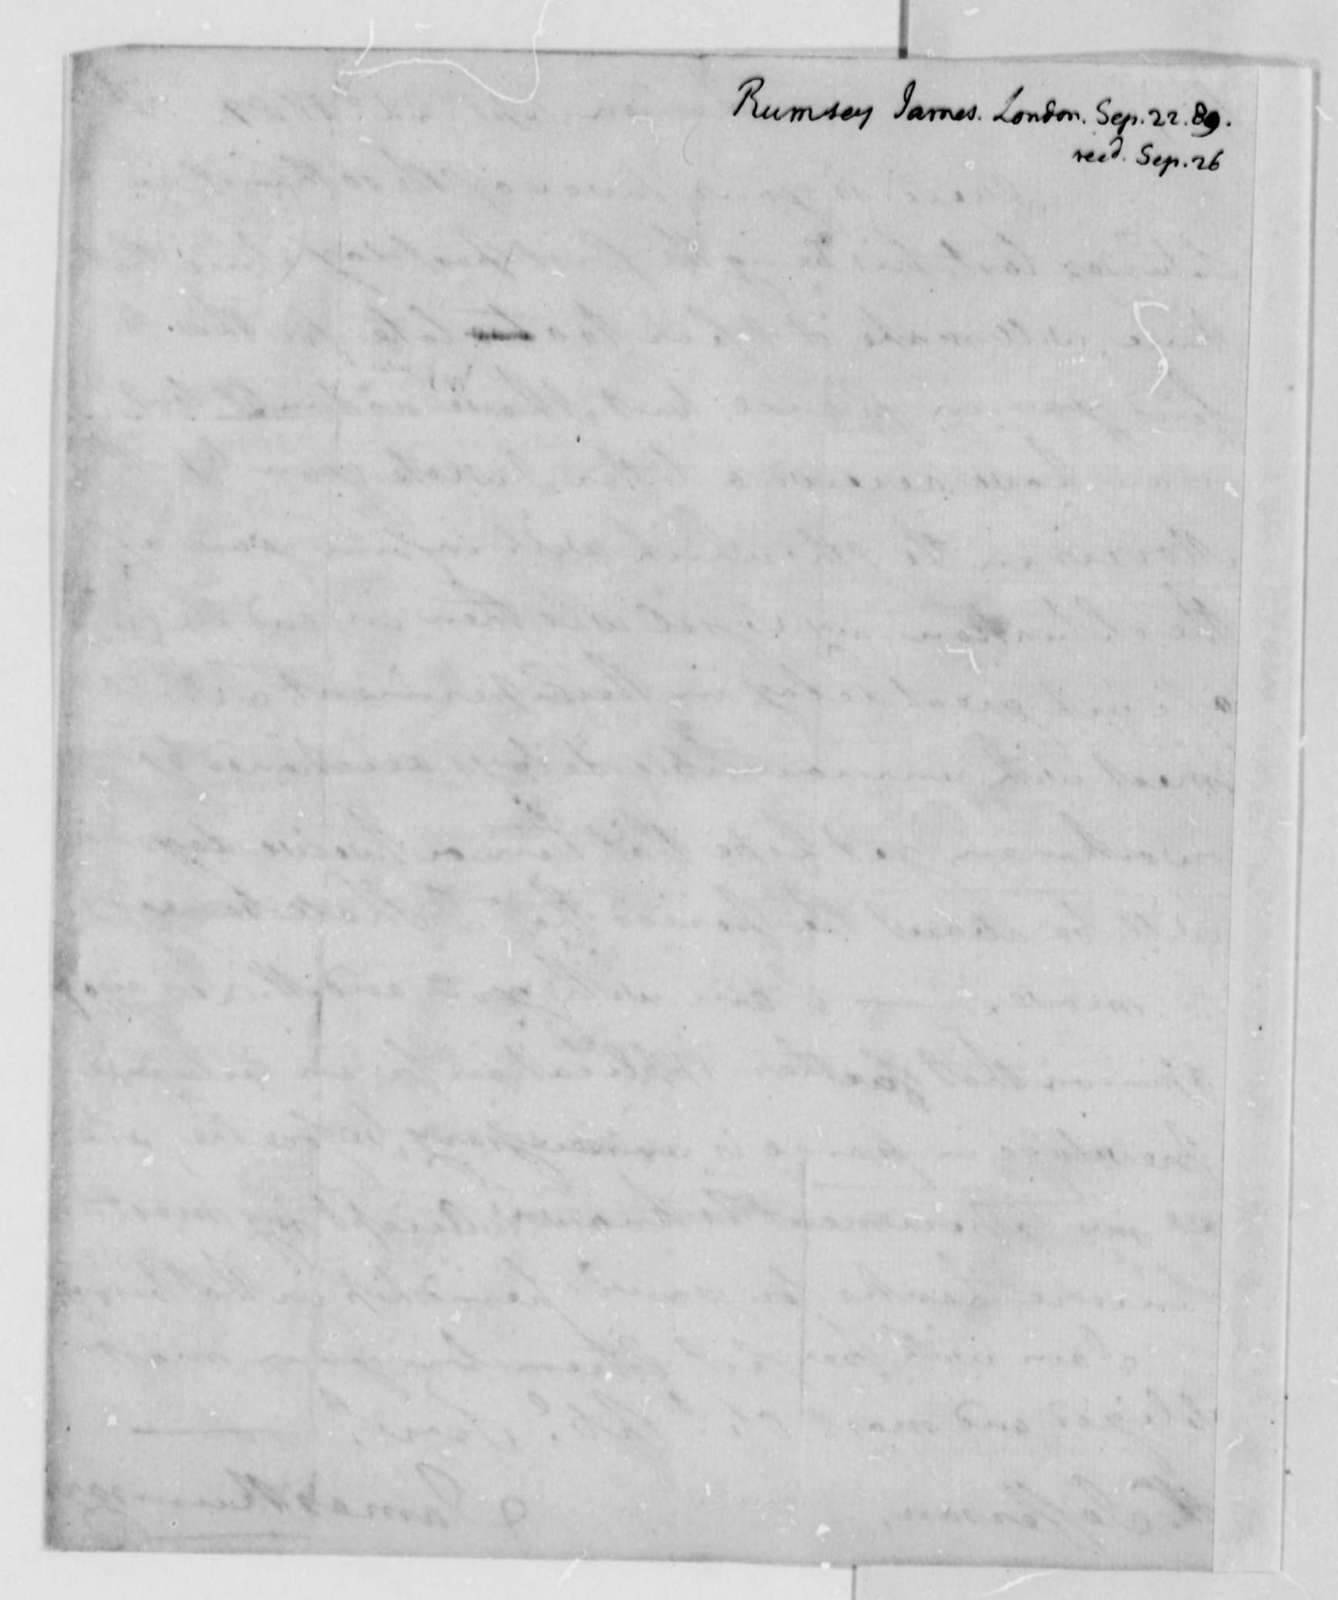 James Rumsey to Thomas Jefferson, September 22, 1789